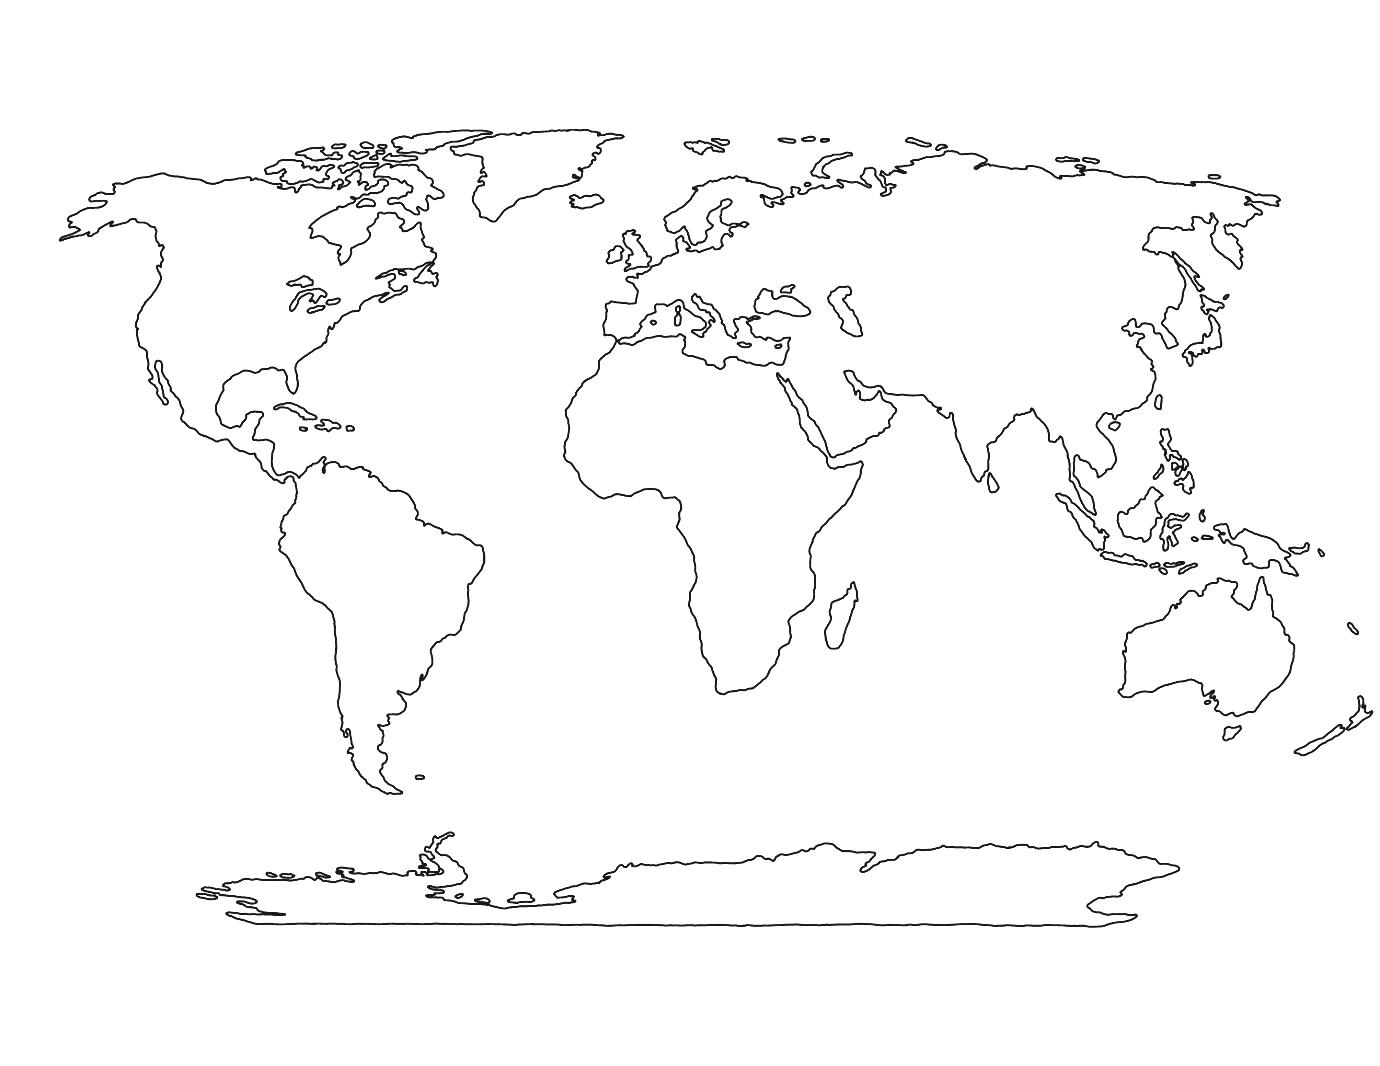 country map clipart black and white #12